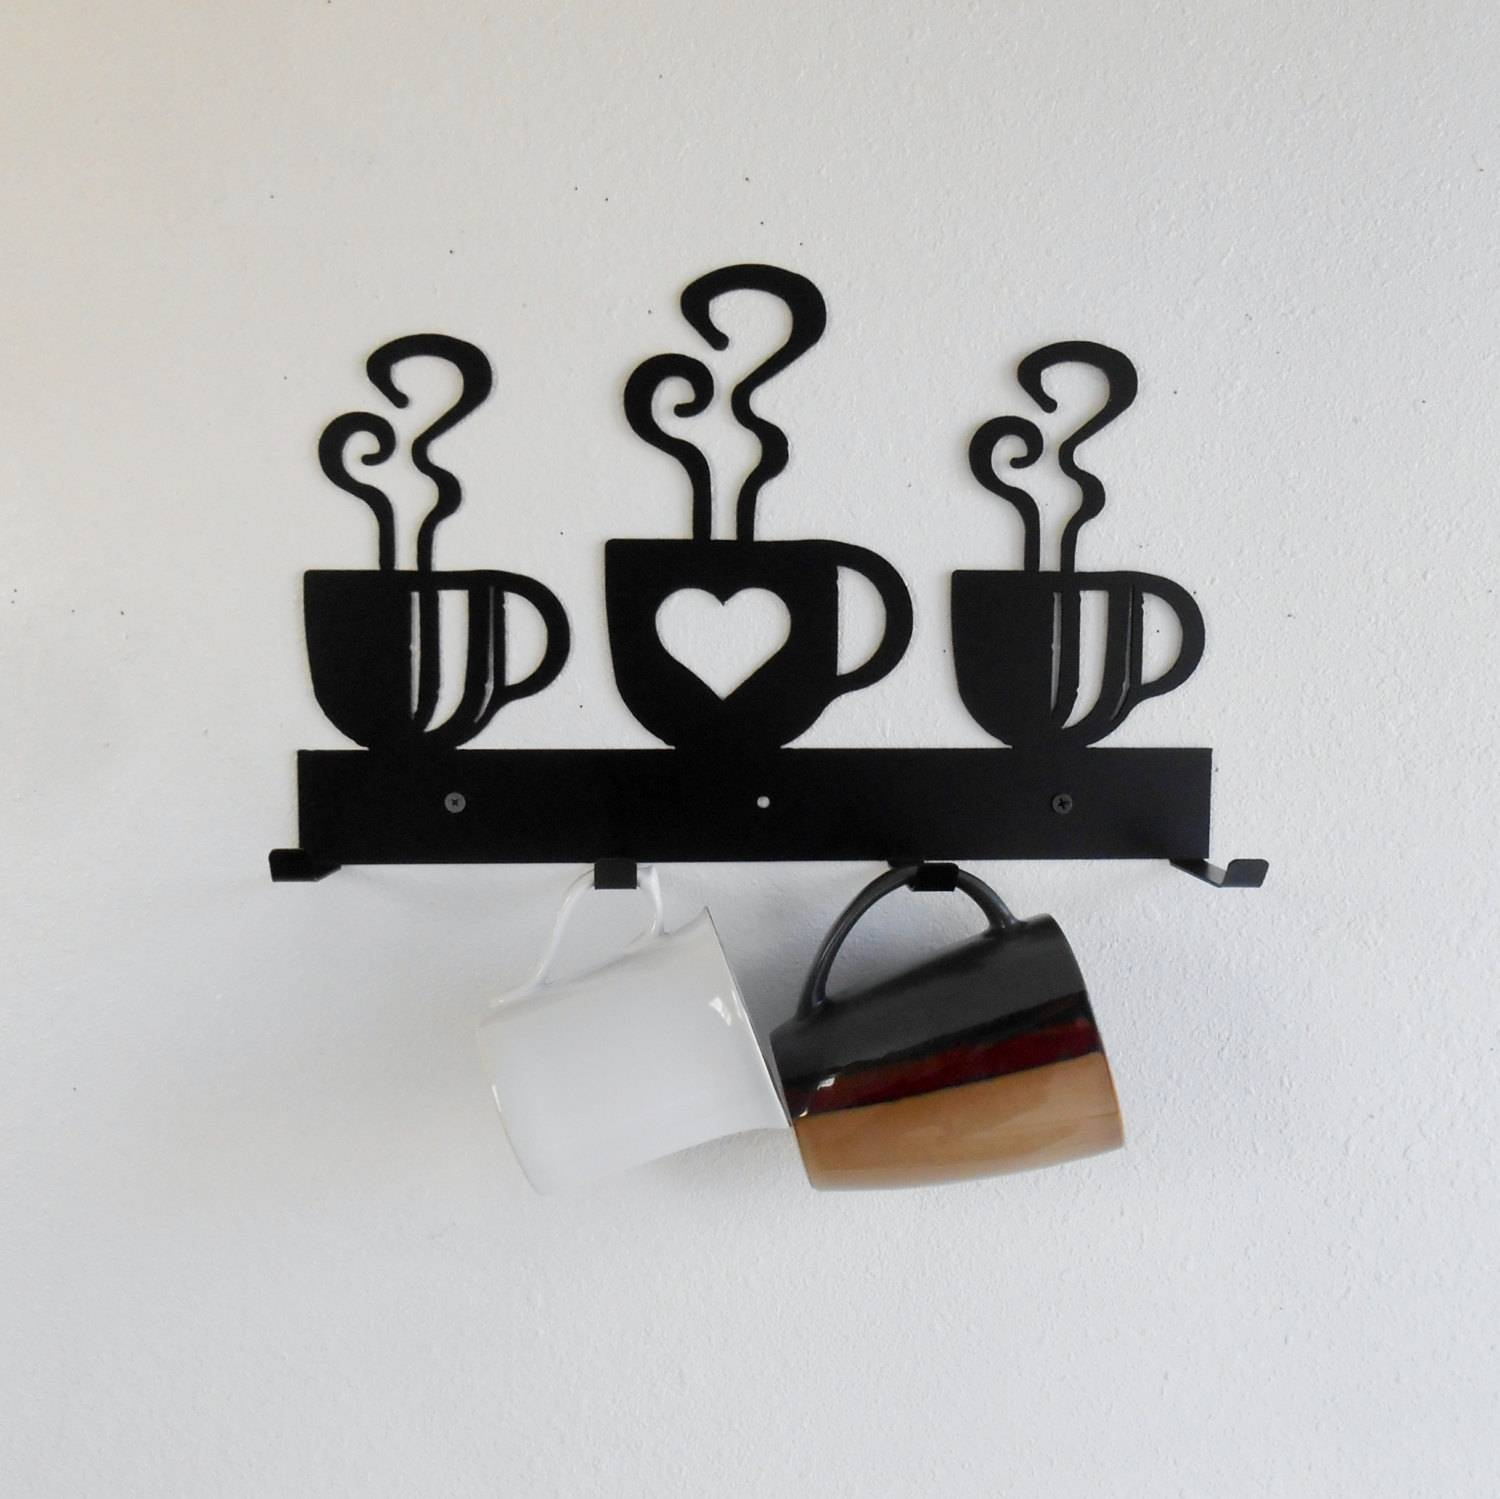 Coffee Cup Mug Rack / Four Cup Holder / Metal Wall Hanging / Pertaining To Latest Coffee Cup Metal Wall Art (View 6 of 20)